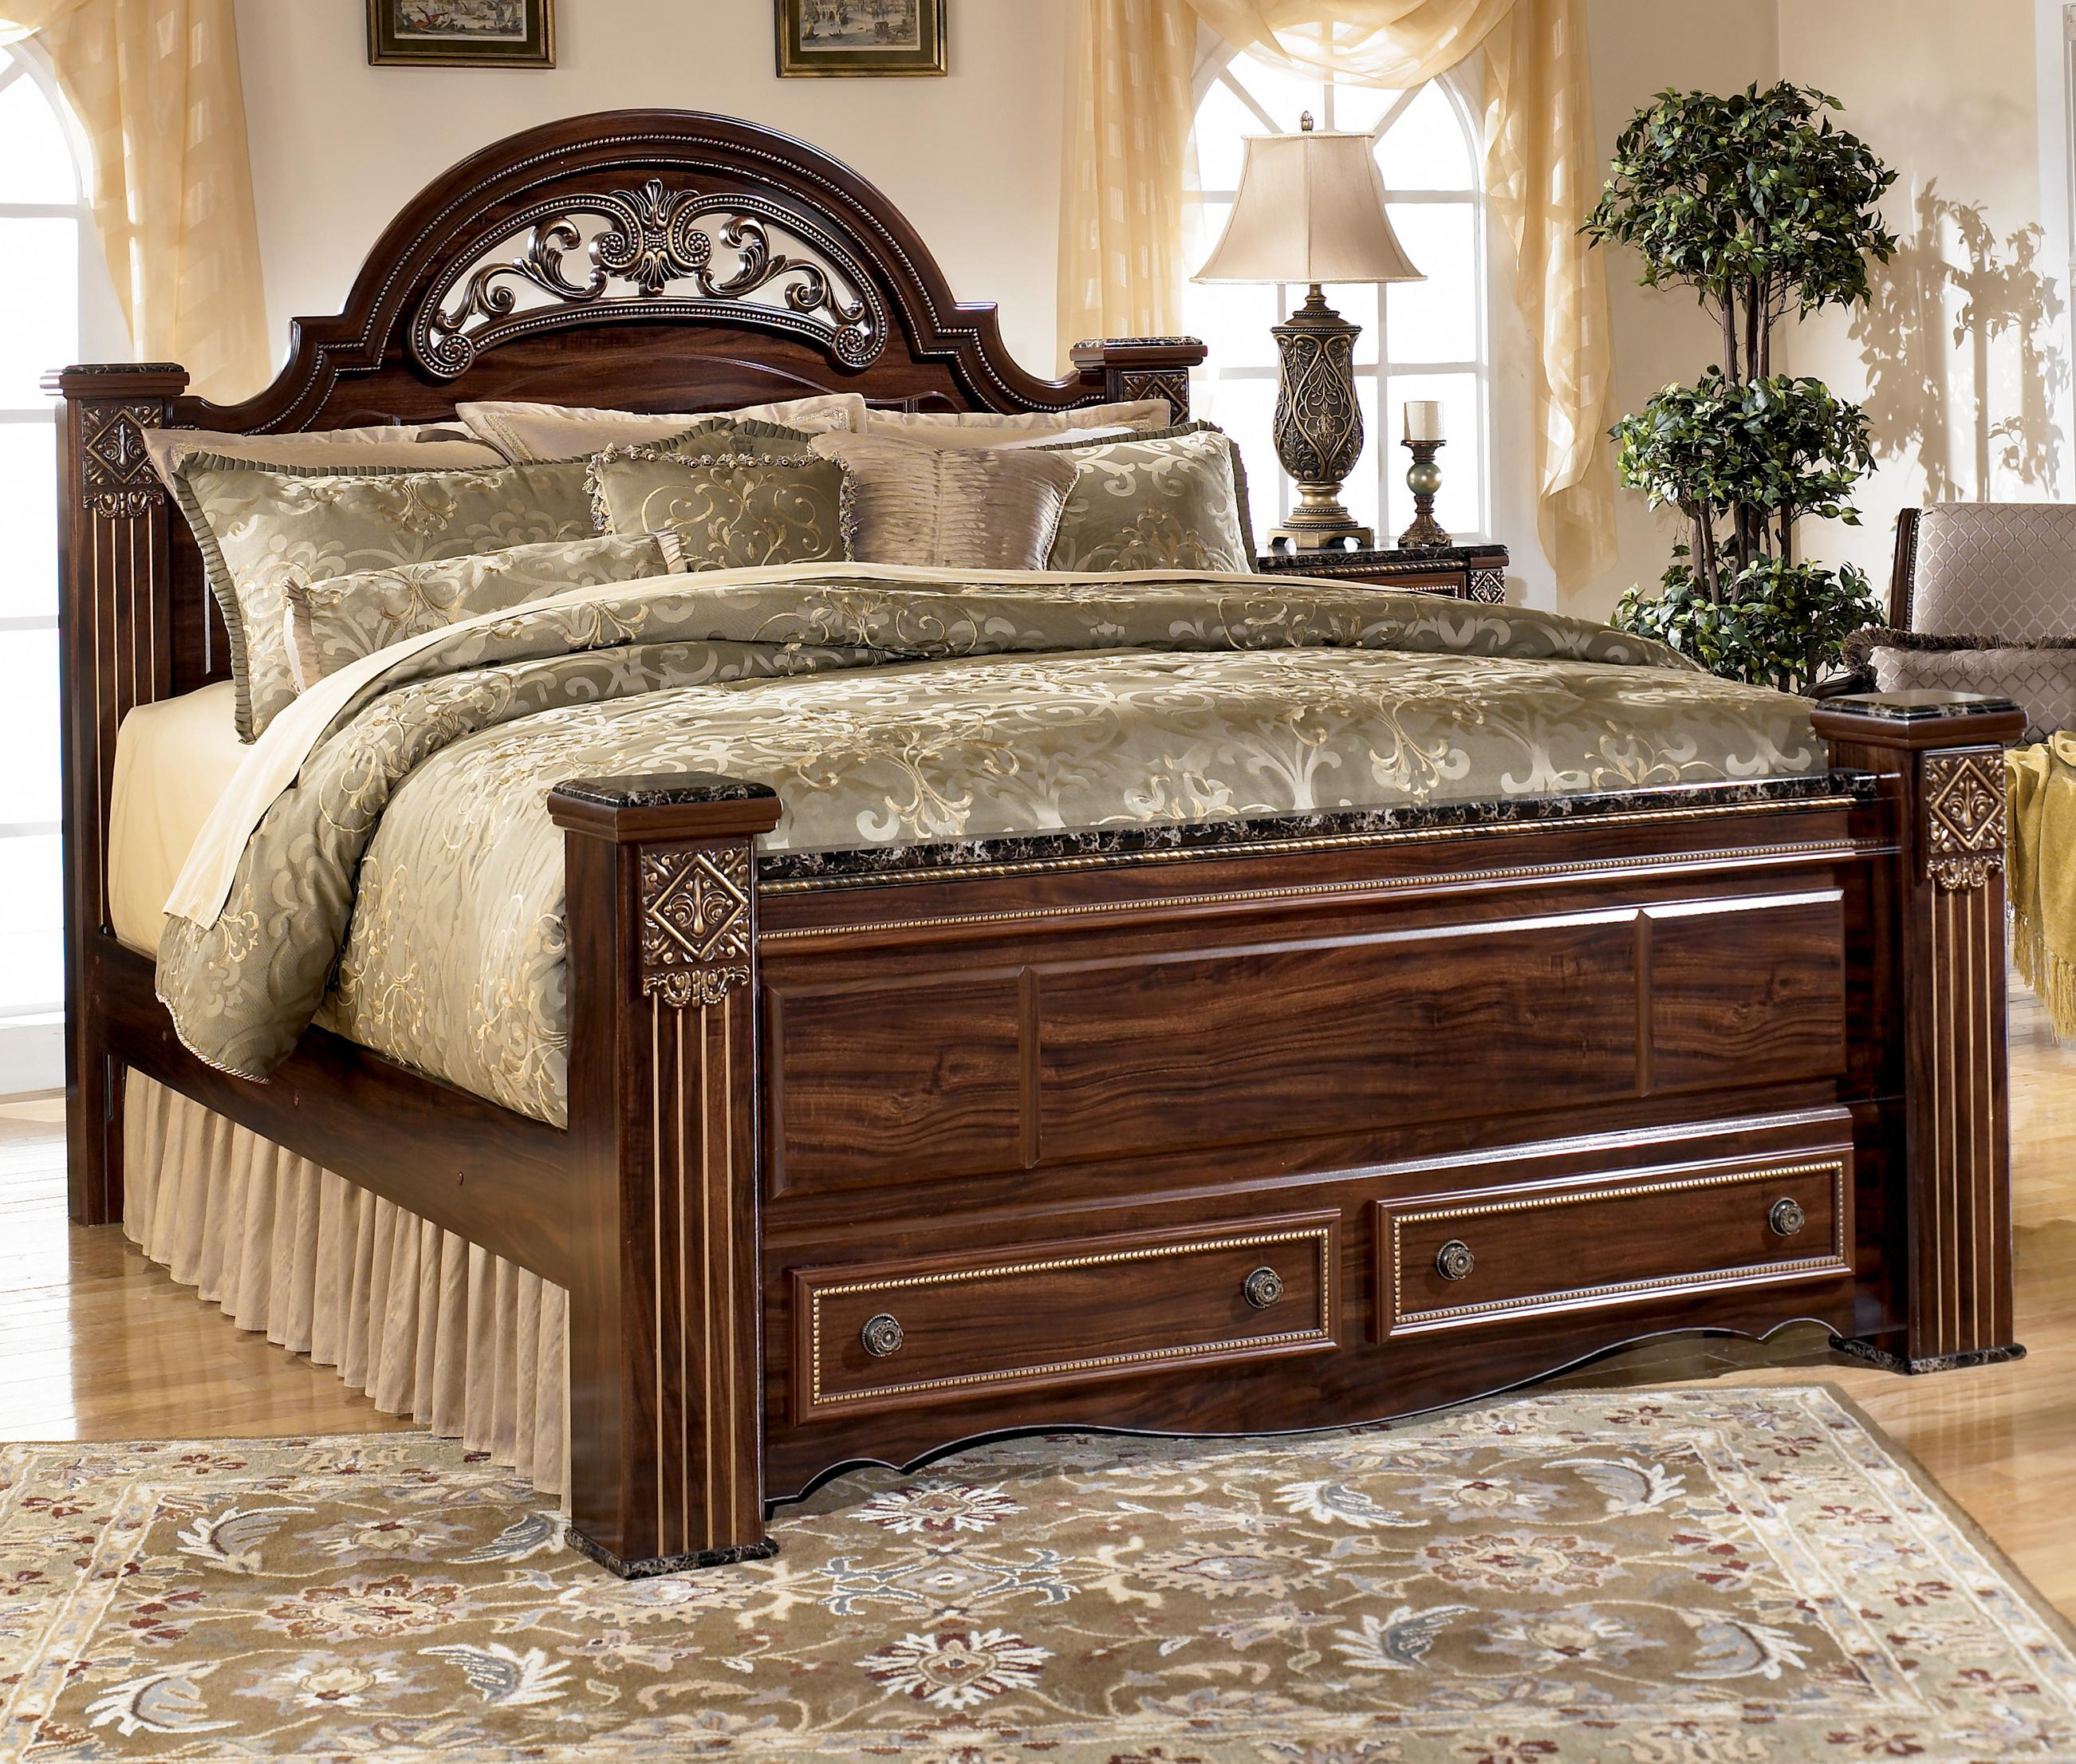 Signature Design By Ashley Furniture Gabriela Traditional Queen Poster Storage Bed With Drawers